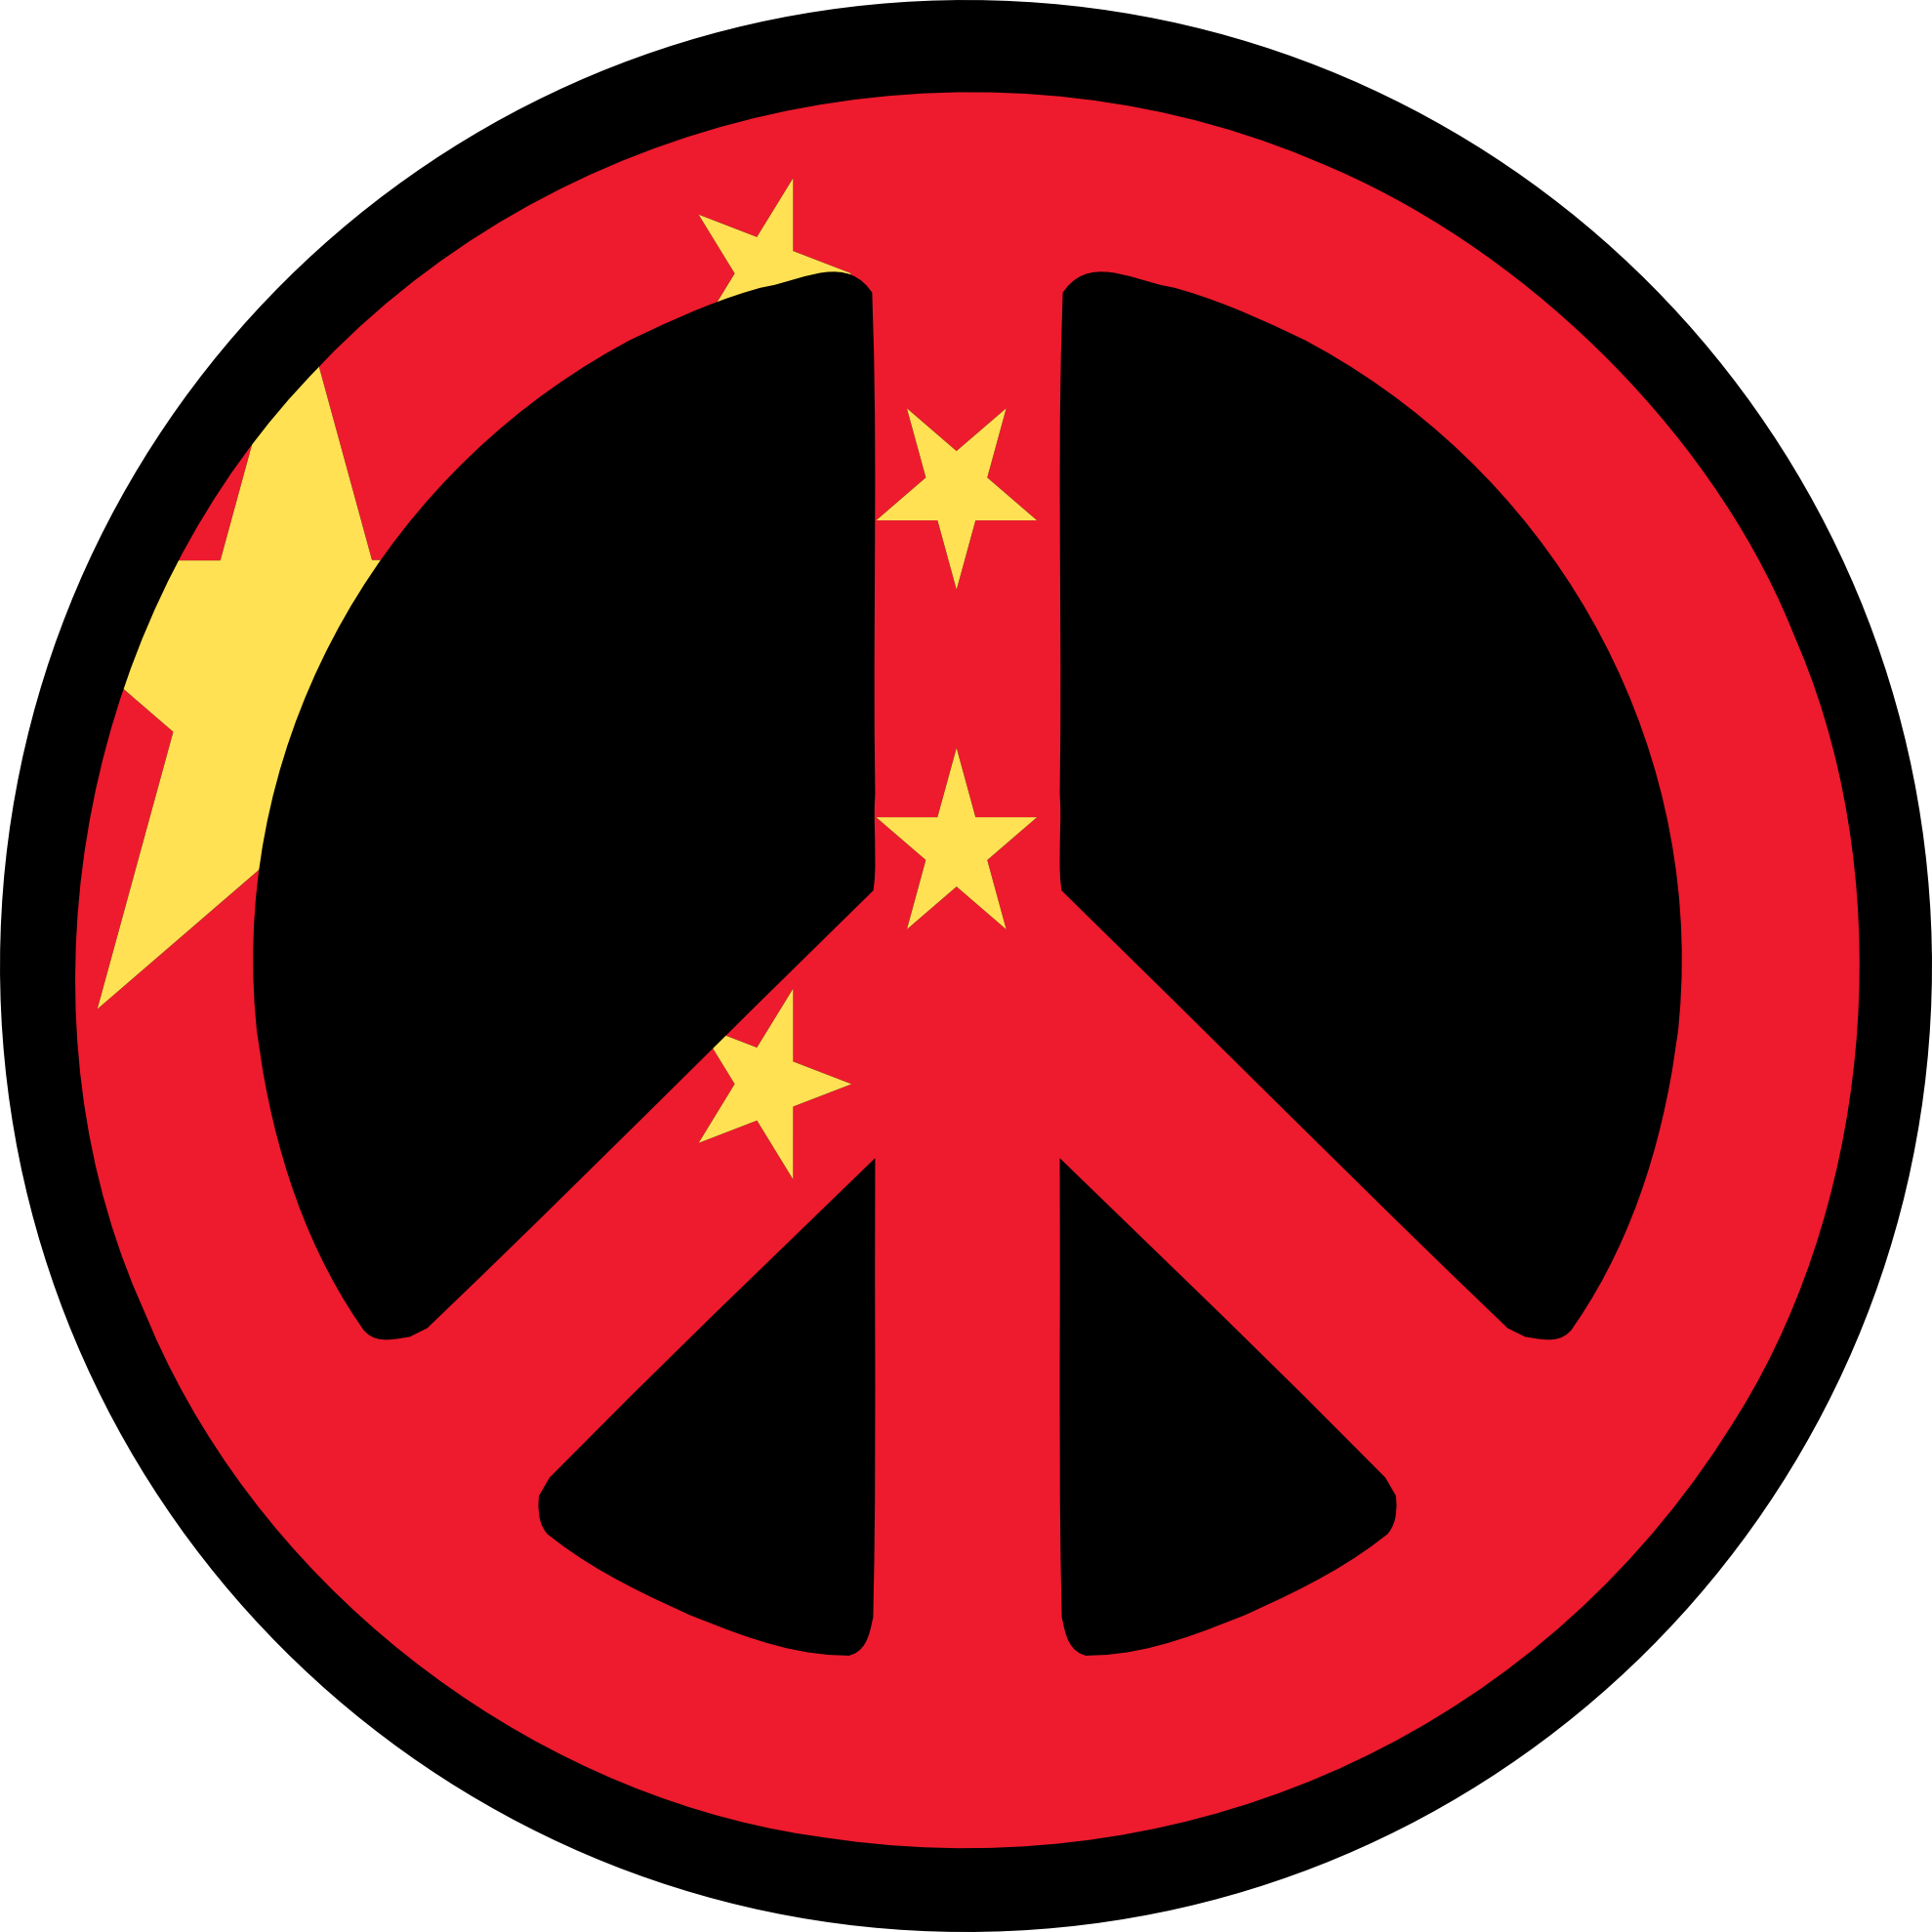 Chinese Peace Symbol Clipart